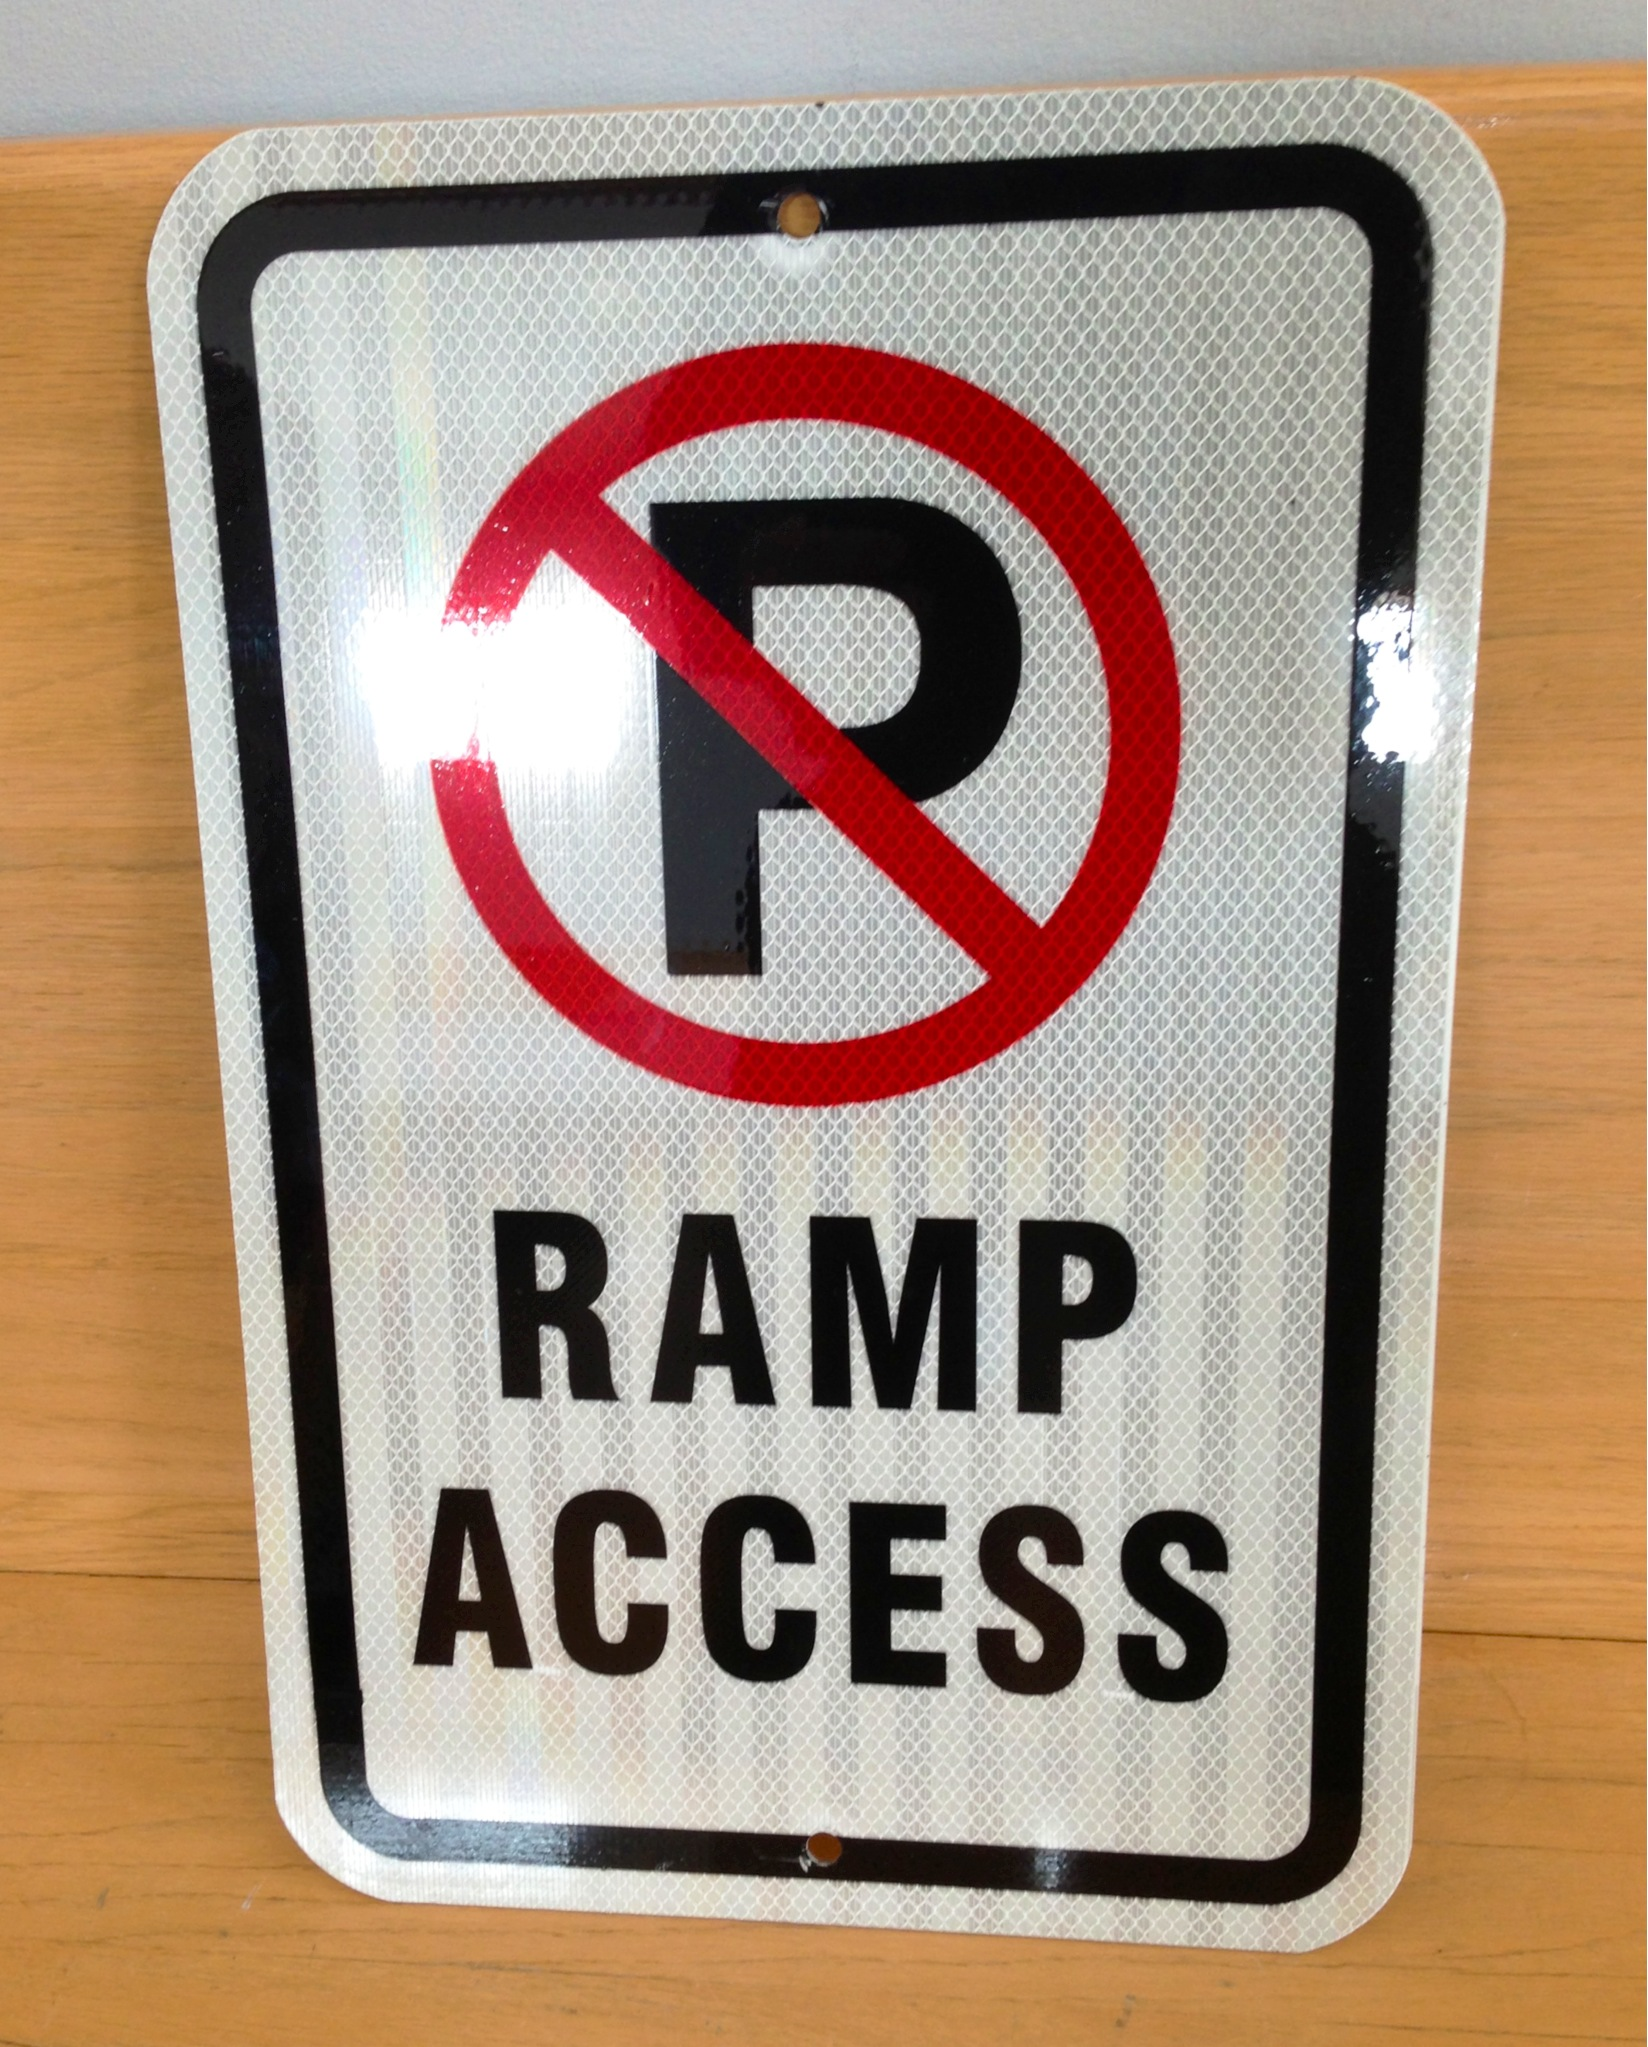 Facility Update! Ramp Access Sign! - Image 1